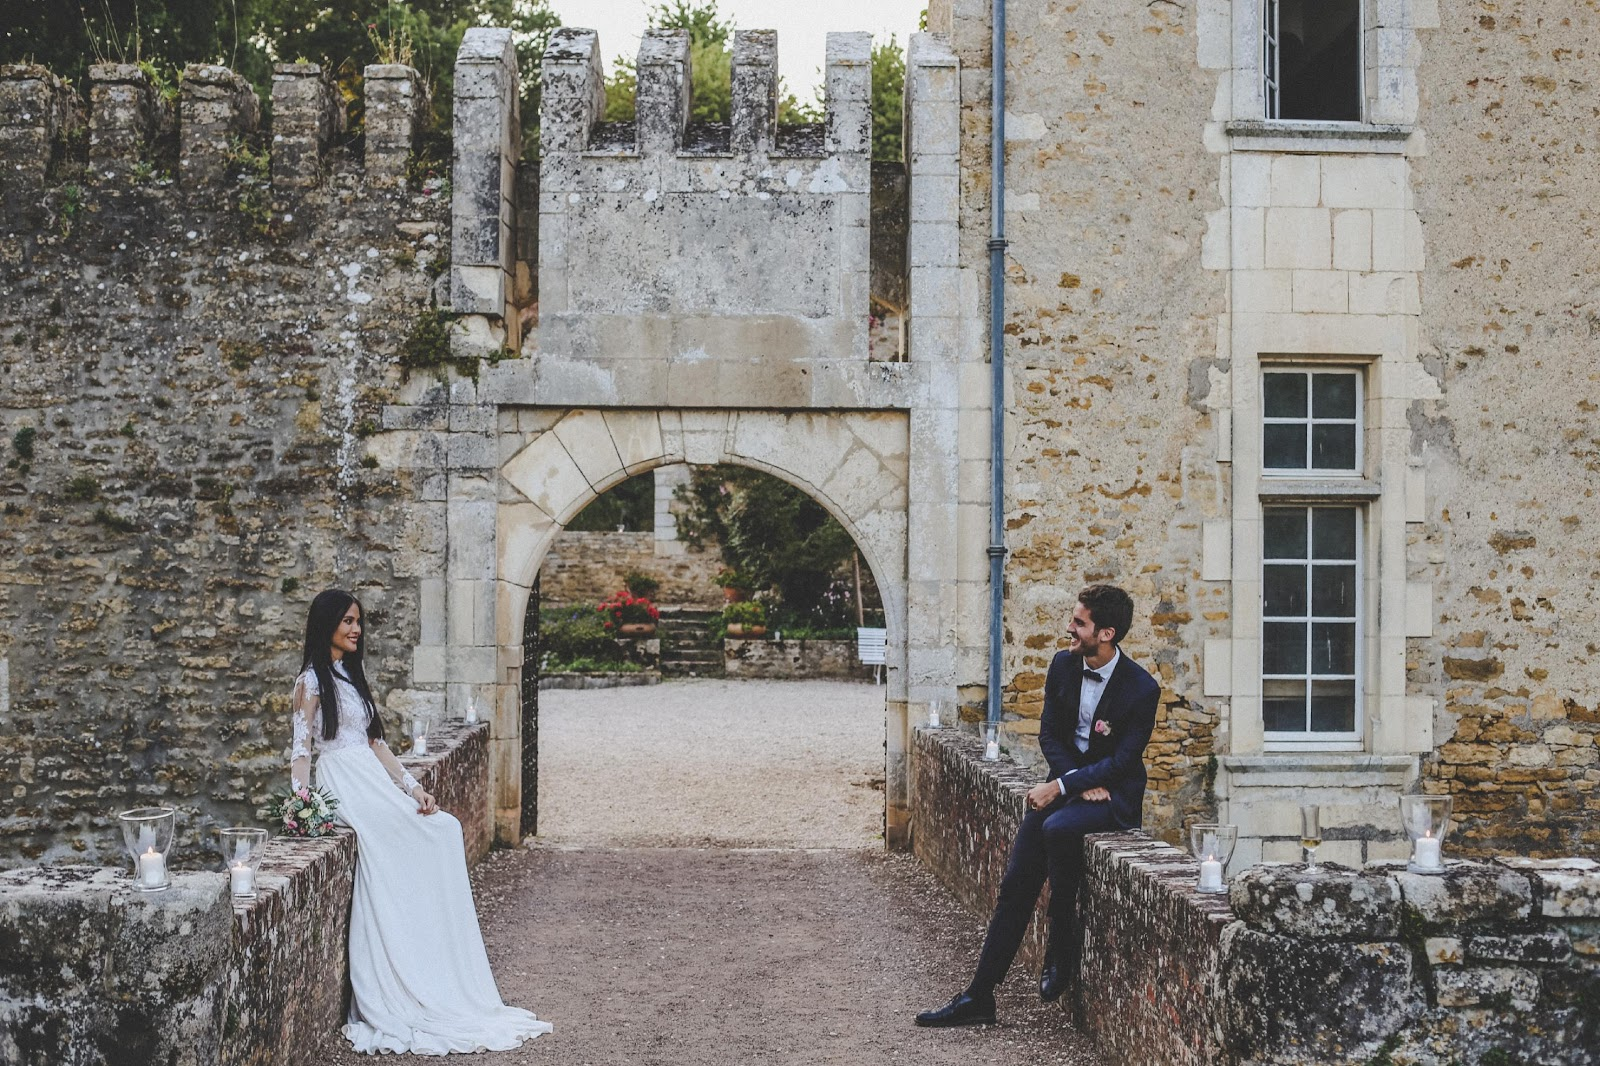 Wedding in France 2018.jpg